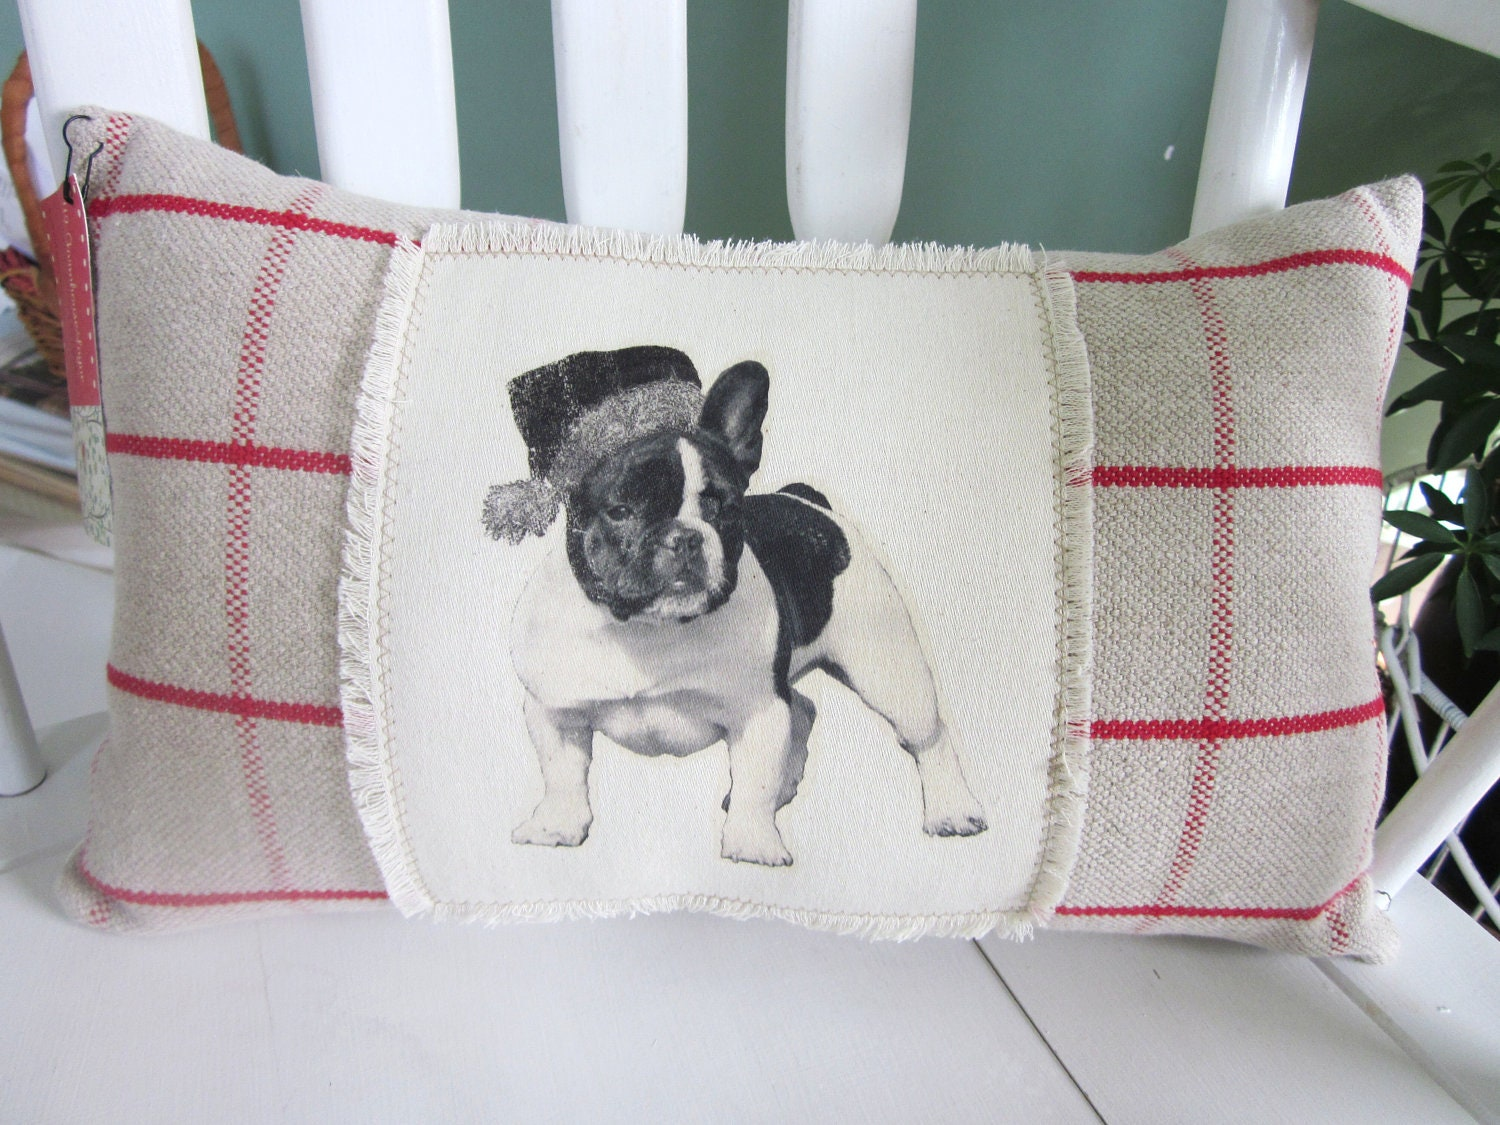 Shabby Chic Christmas Pillows : Christmas pillowbulldog pillow shabby chic farmhouse decor